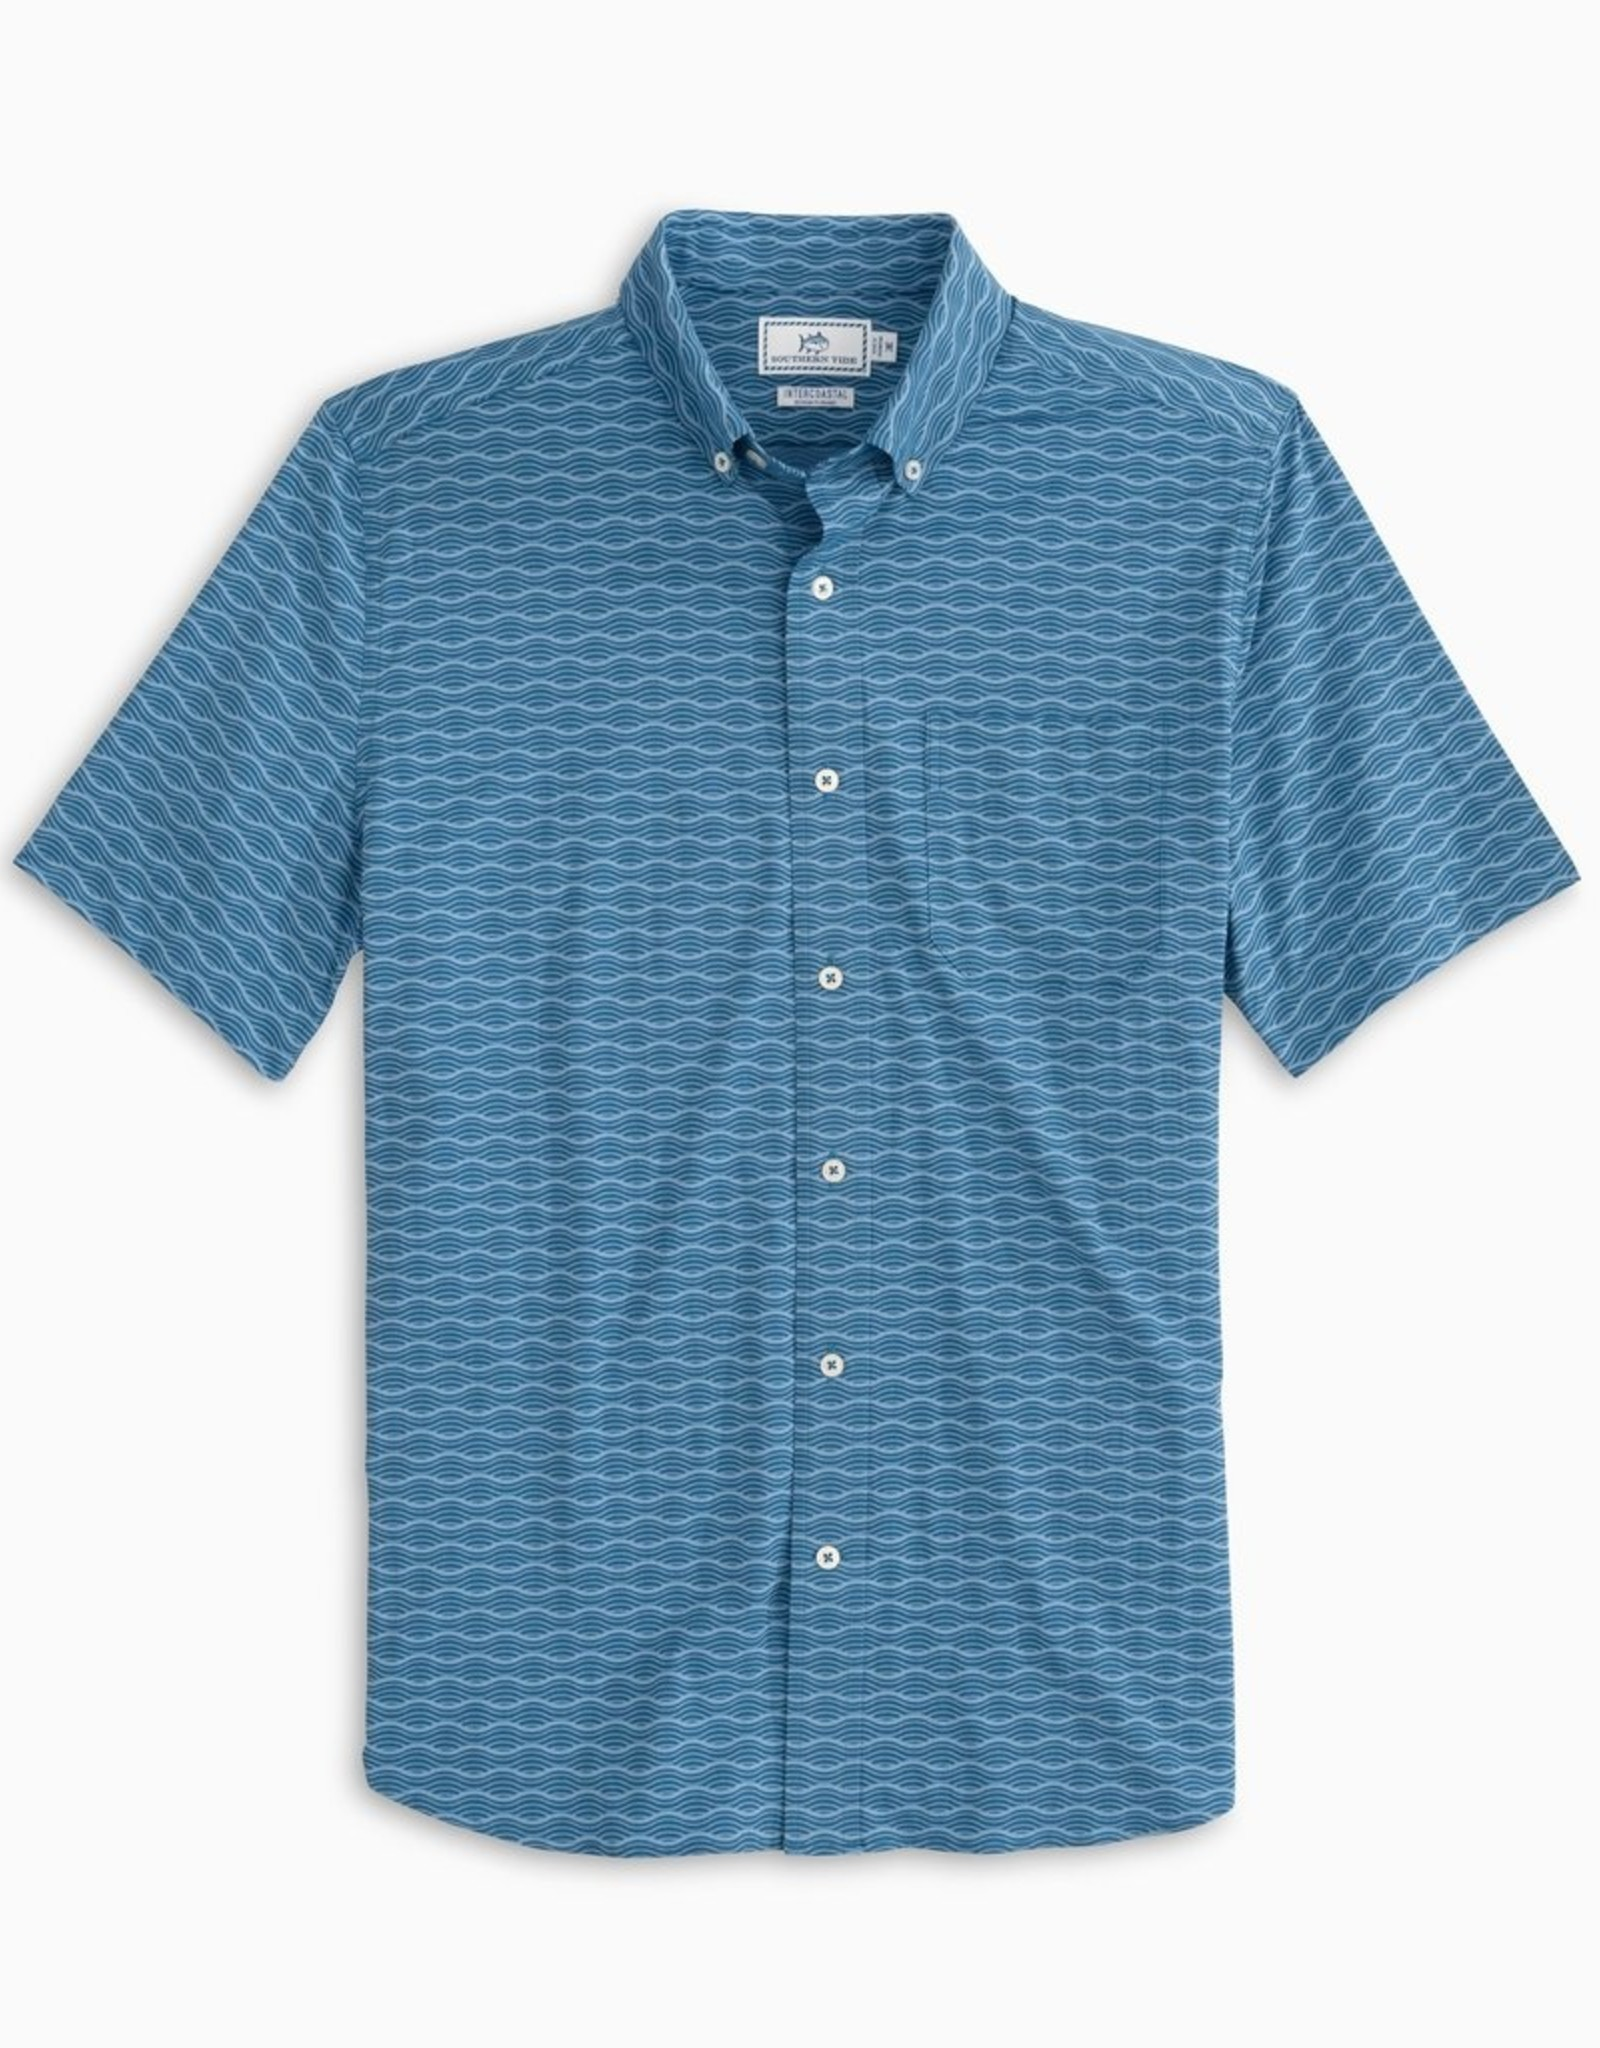 Southern Tide IC Wave Crest Sportshirt